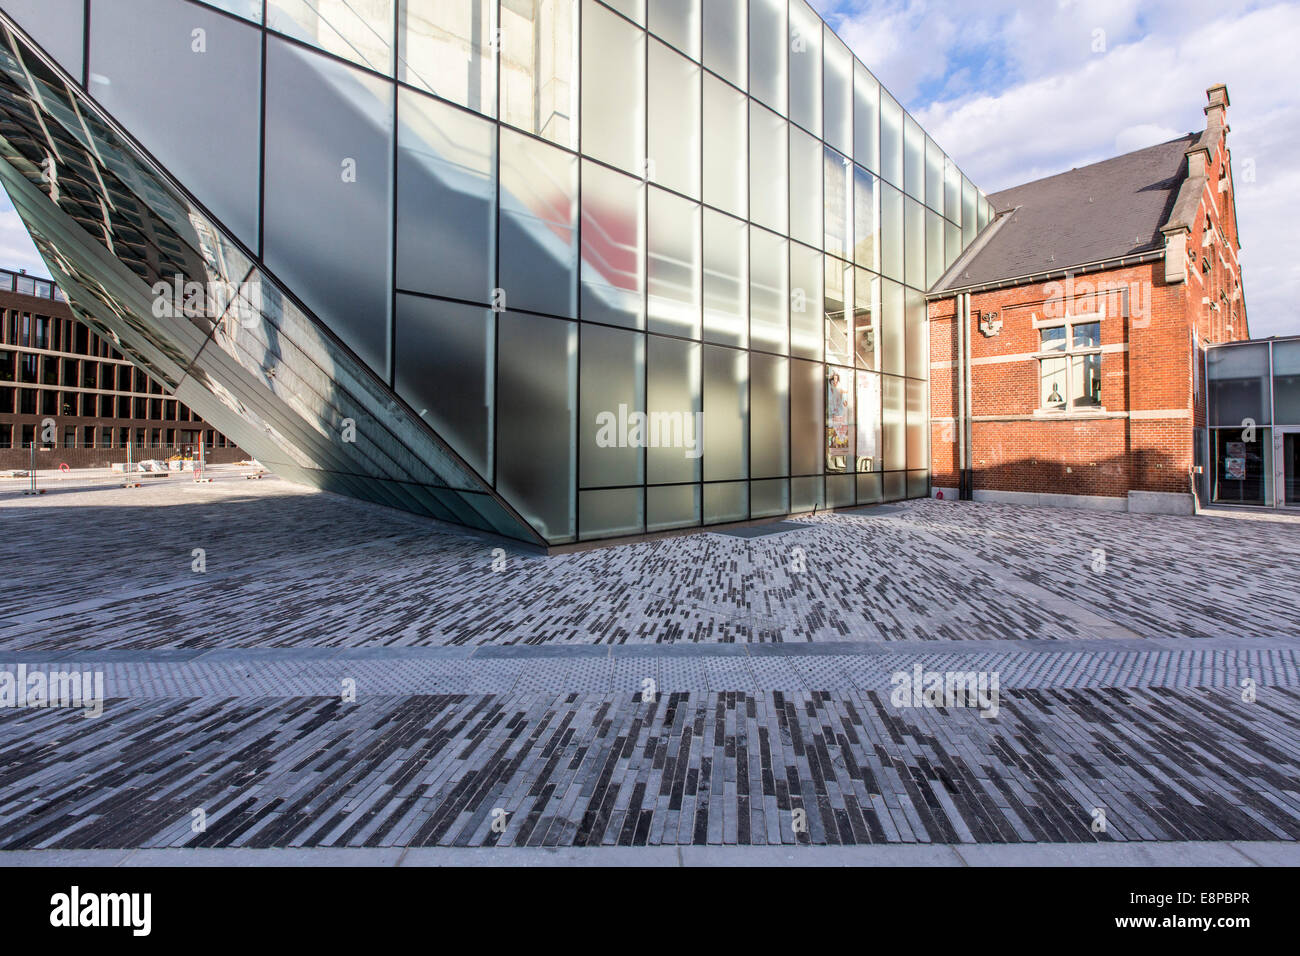 """""""Theatre Le Manege"""" theater in new and old buildings, central point for the Capital of Culture 2015, Stock Photo"""